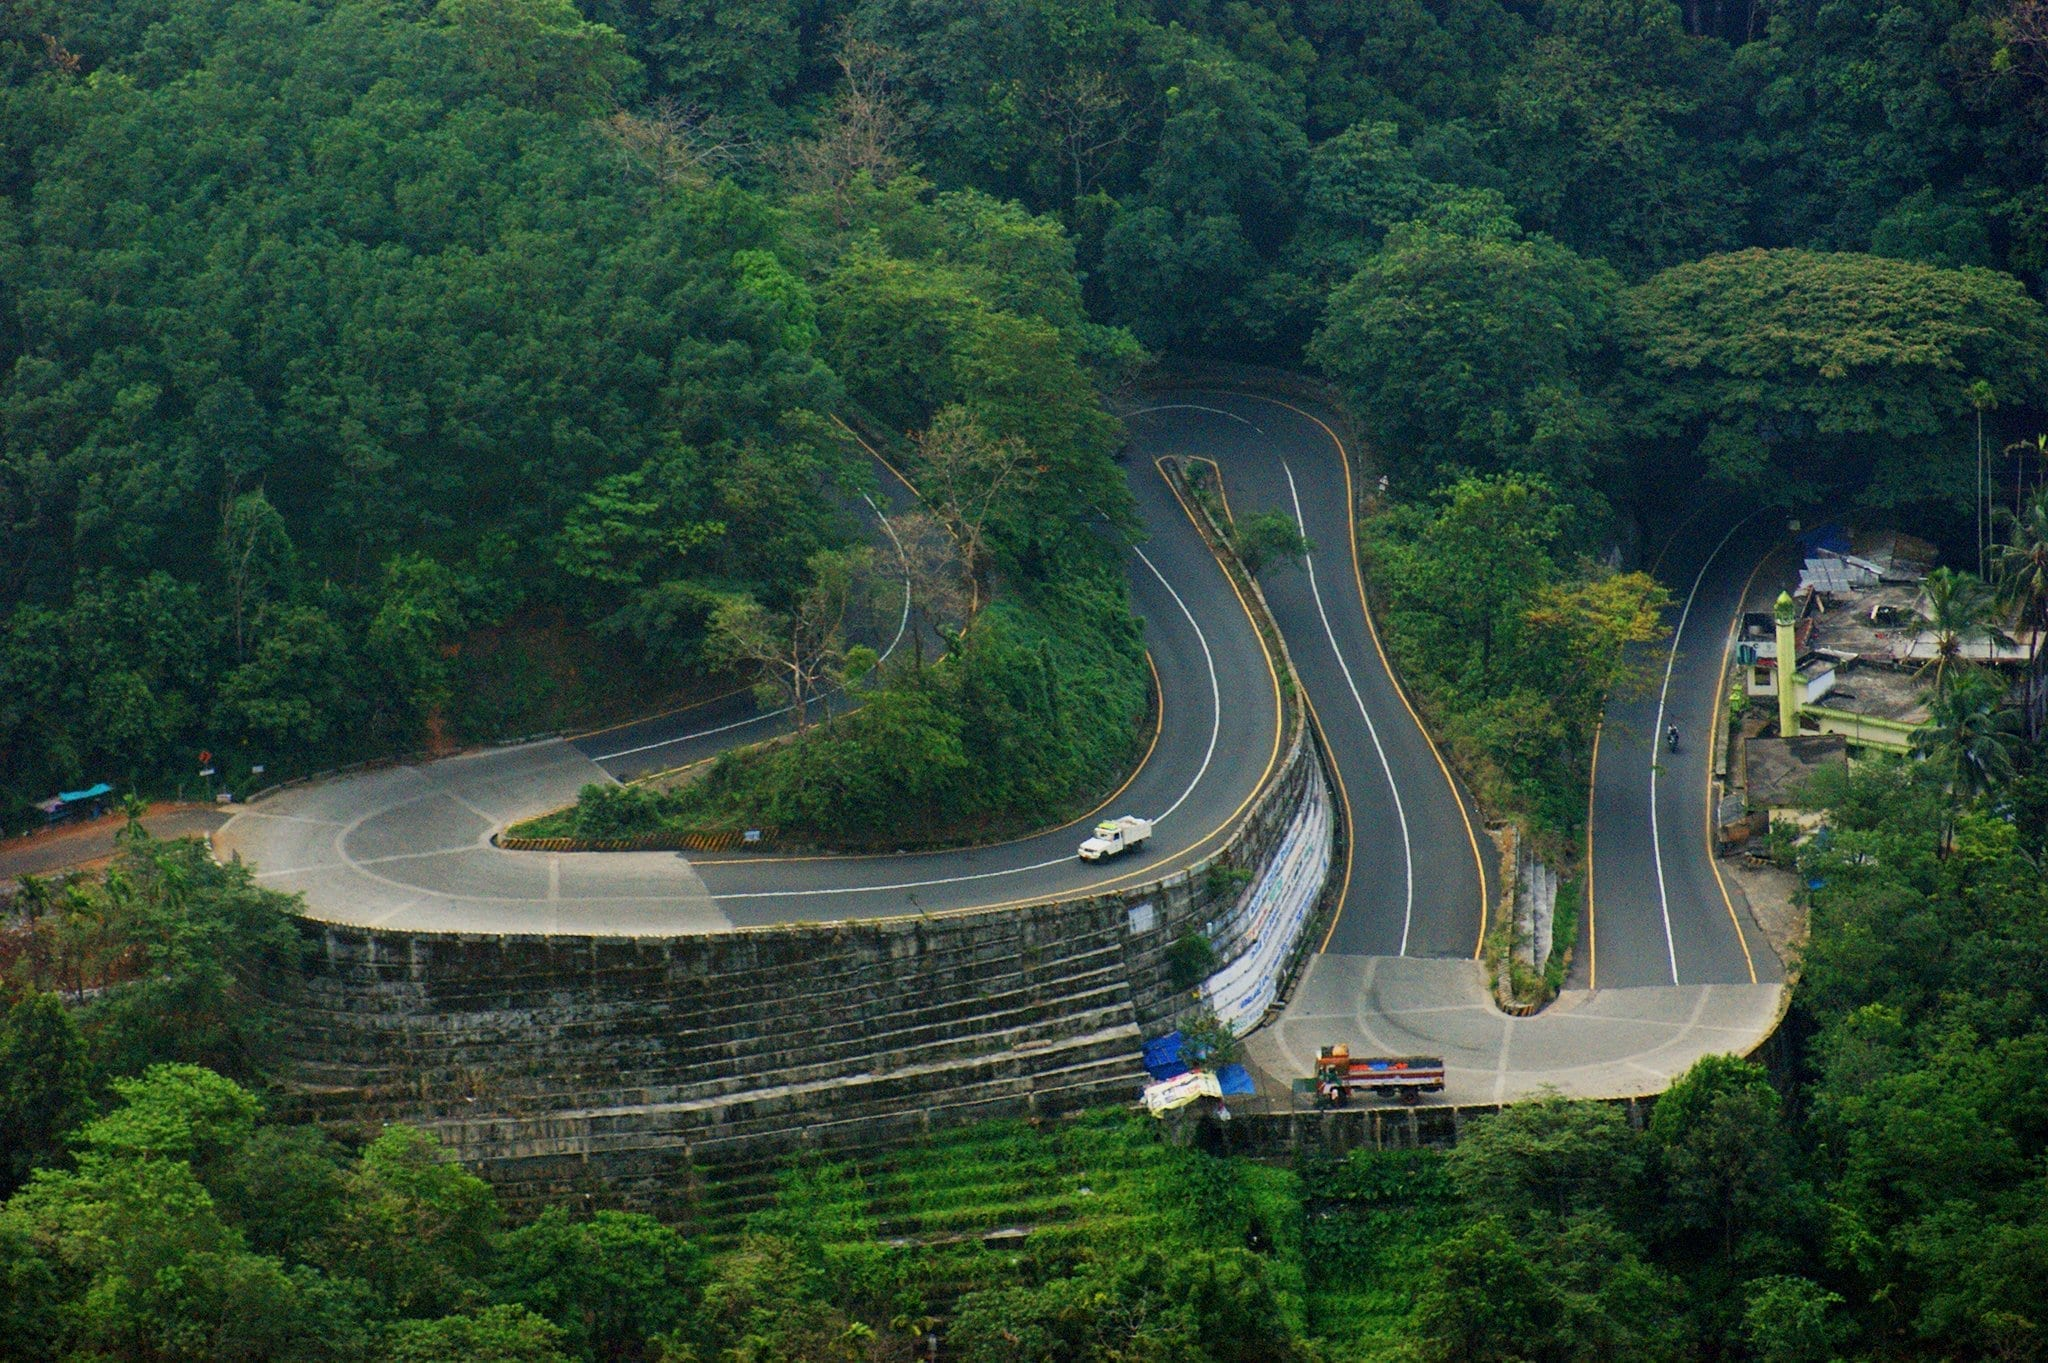 The interesting roads in Wayanad, Kerala